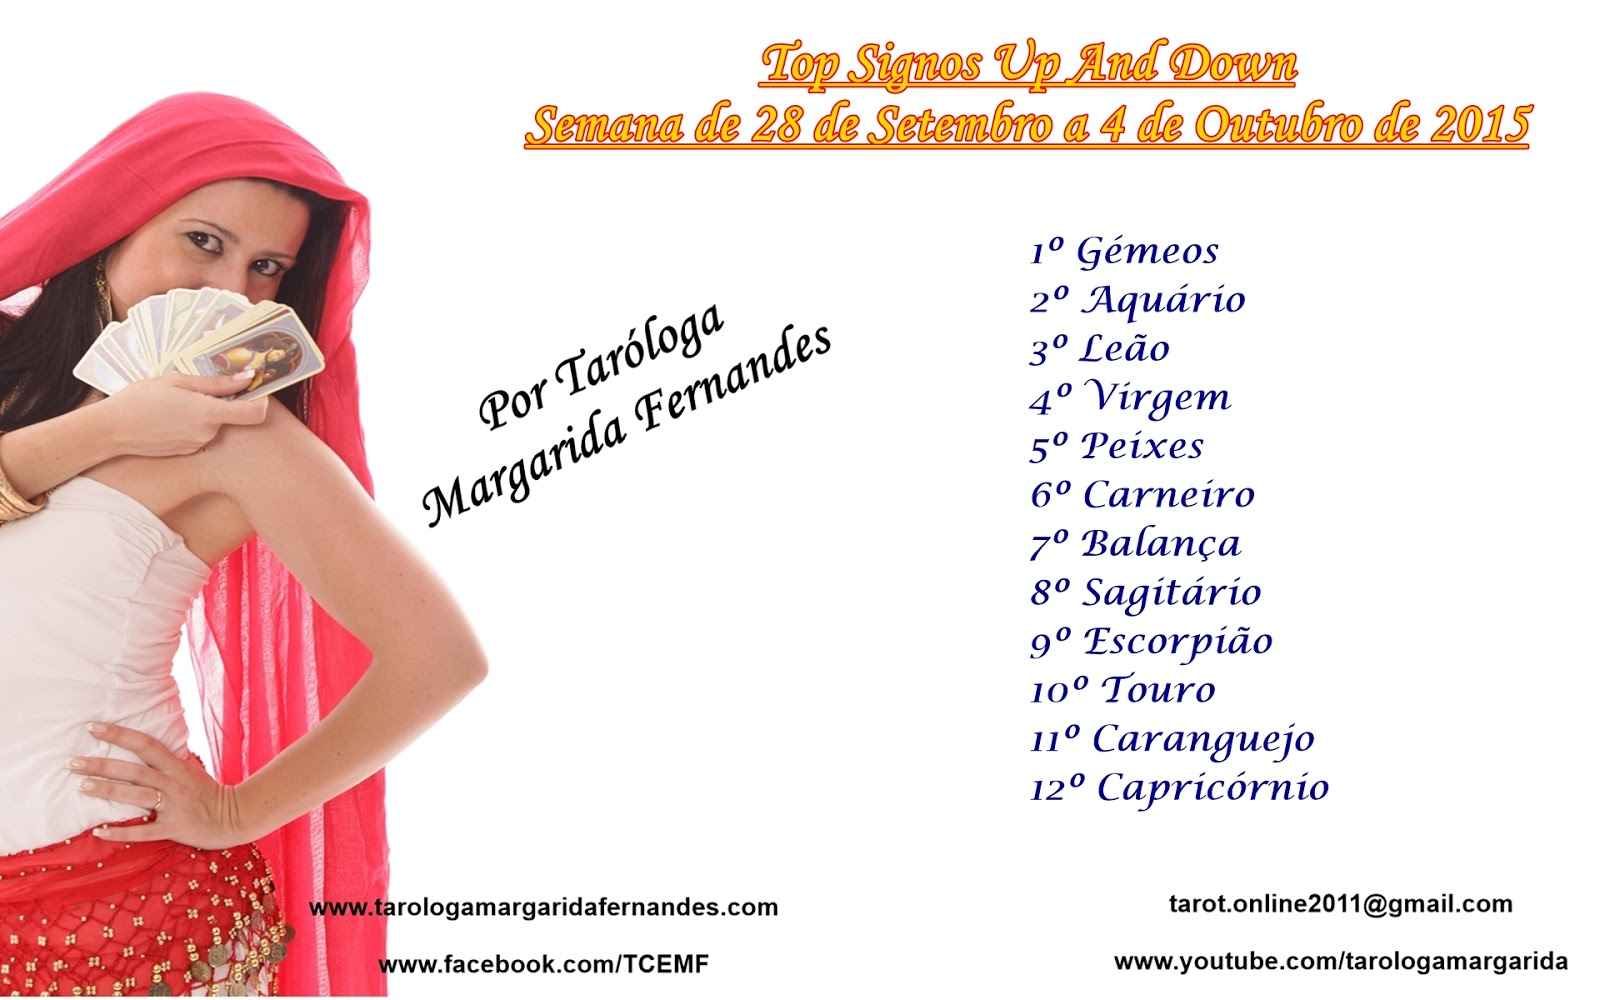 Horoscopos Por Meses Top Signos Up And Down Semana De 28 De Setembro A 4 De